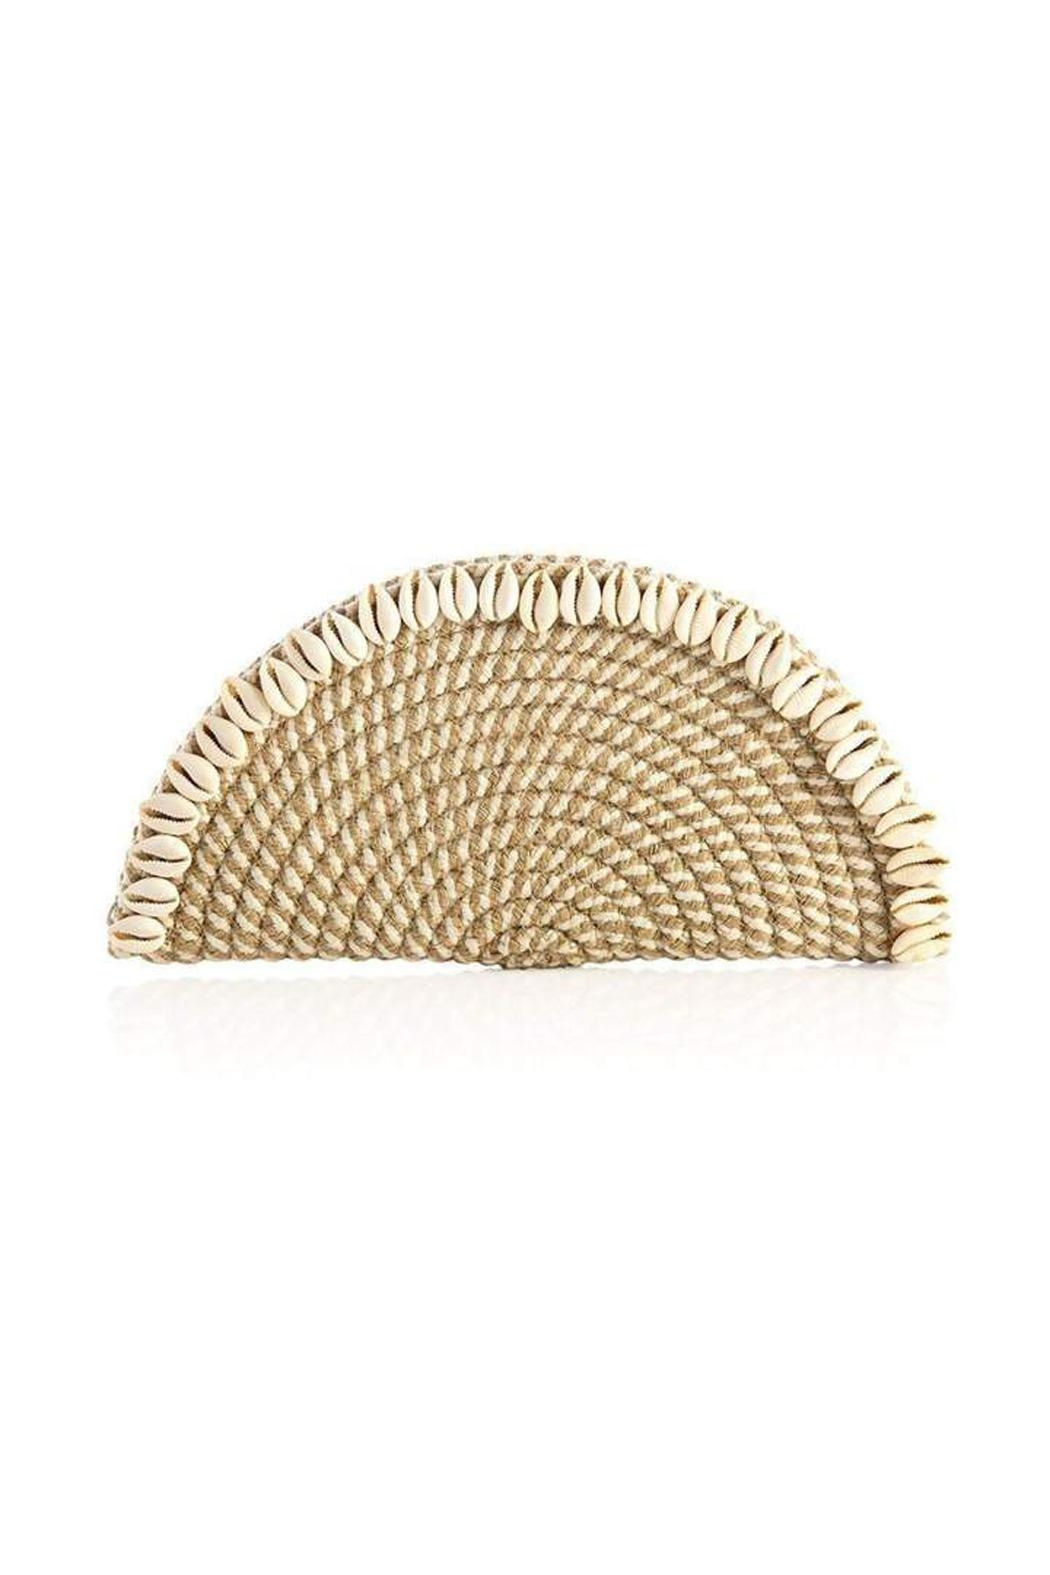 Shiraleah Willa Puka Clutch - Main Image